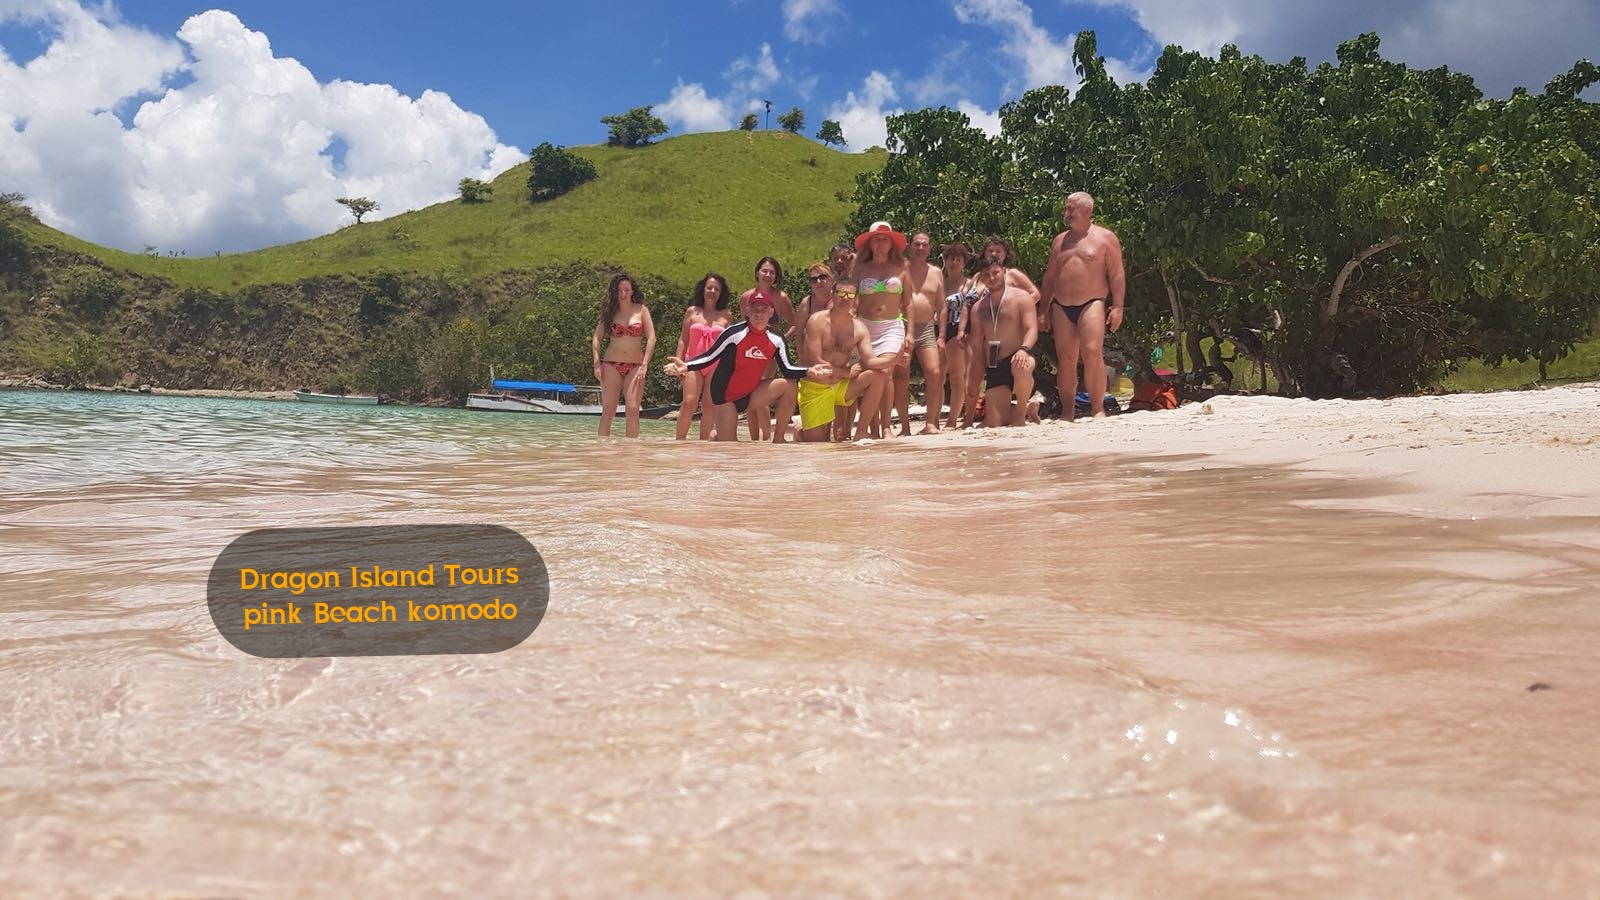 Our Tour Group at Pink Beach